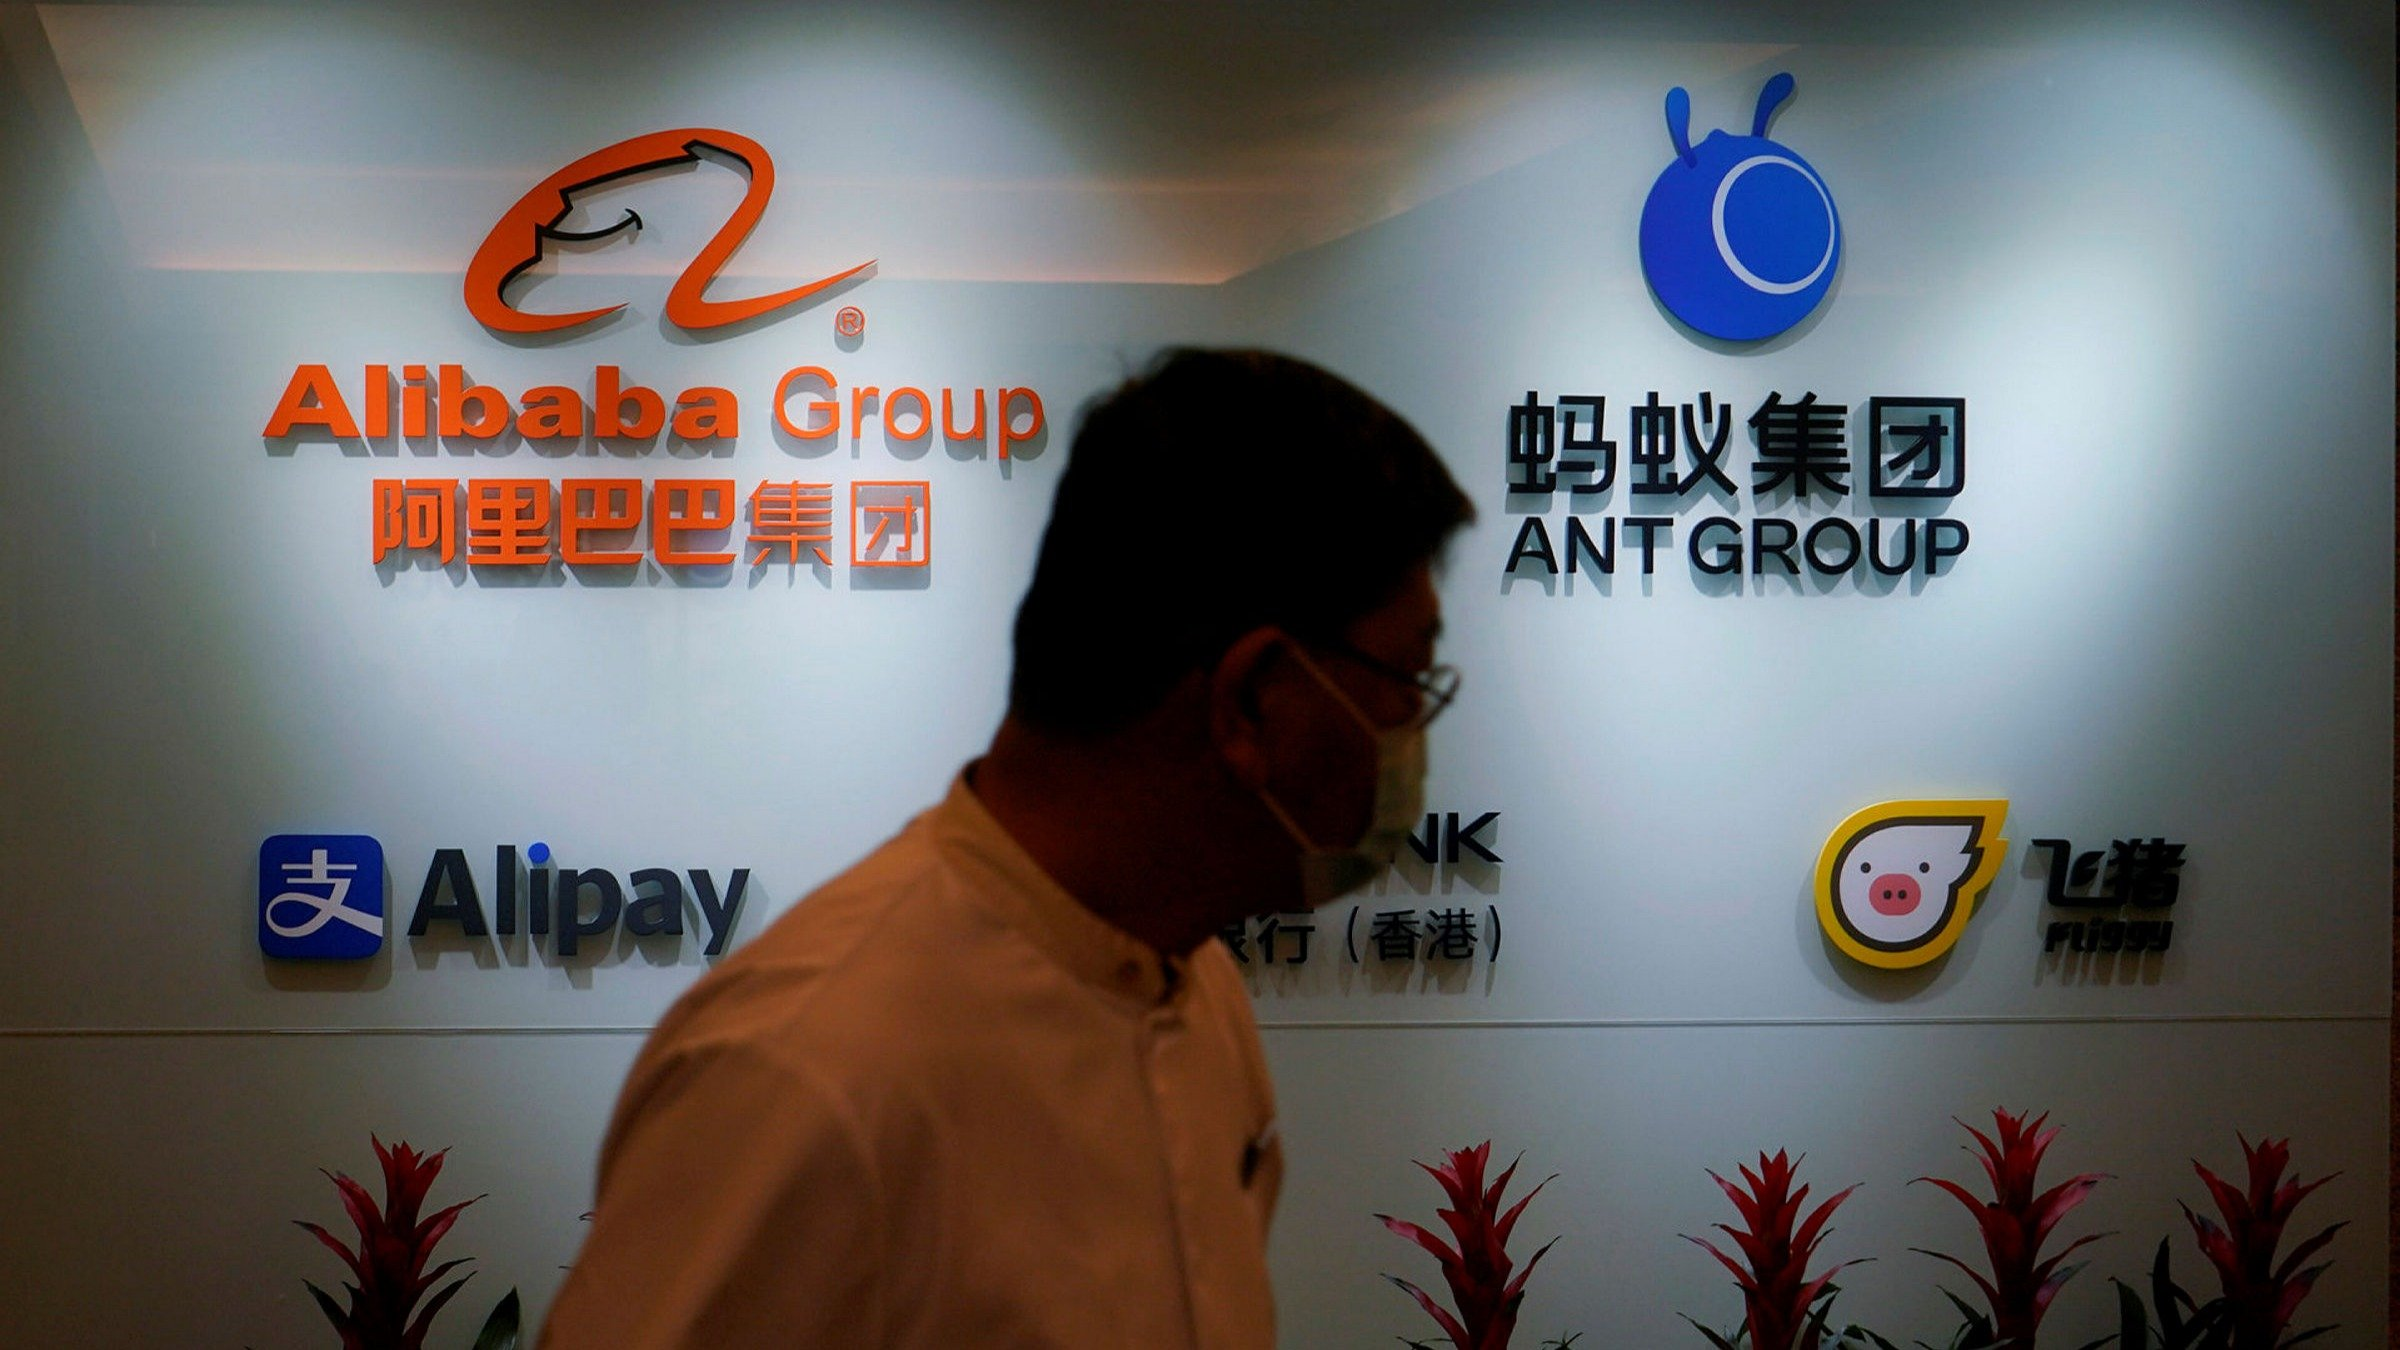 ant group ipo was suspended